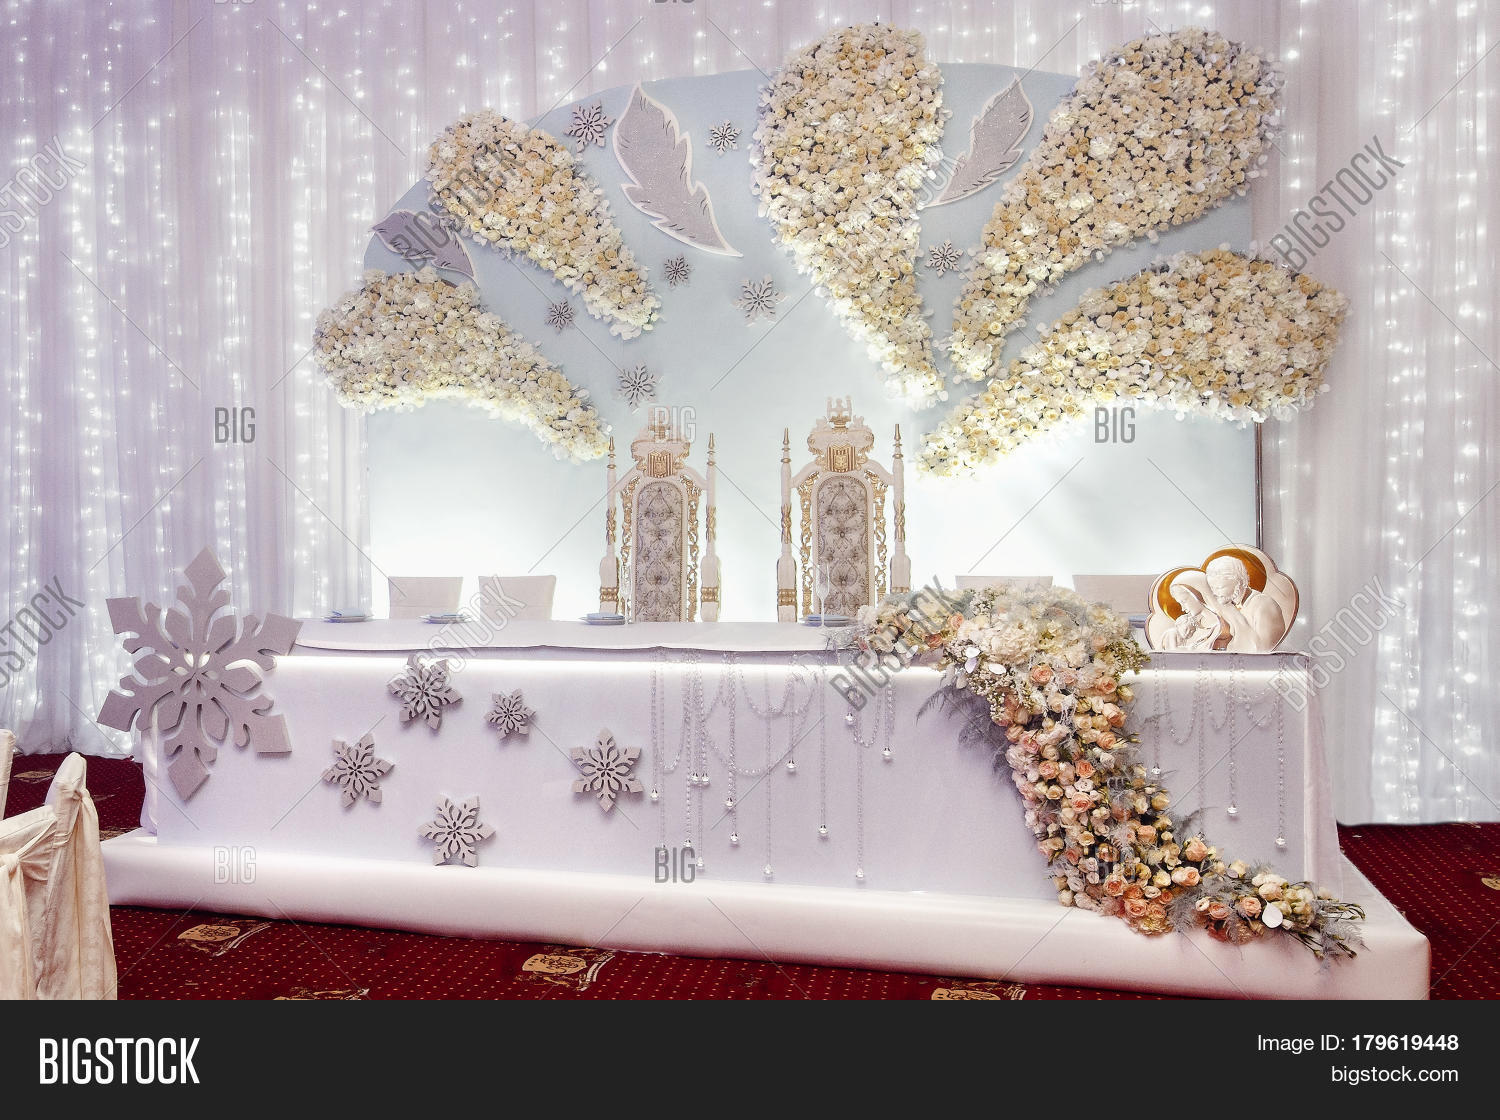 Luxury Wedding Decor Image Photo Free Trial Bigstock